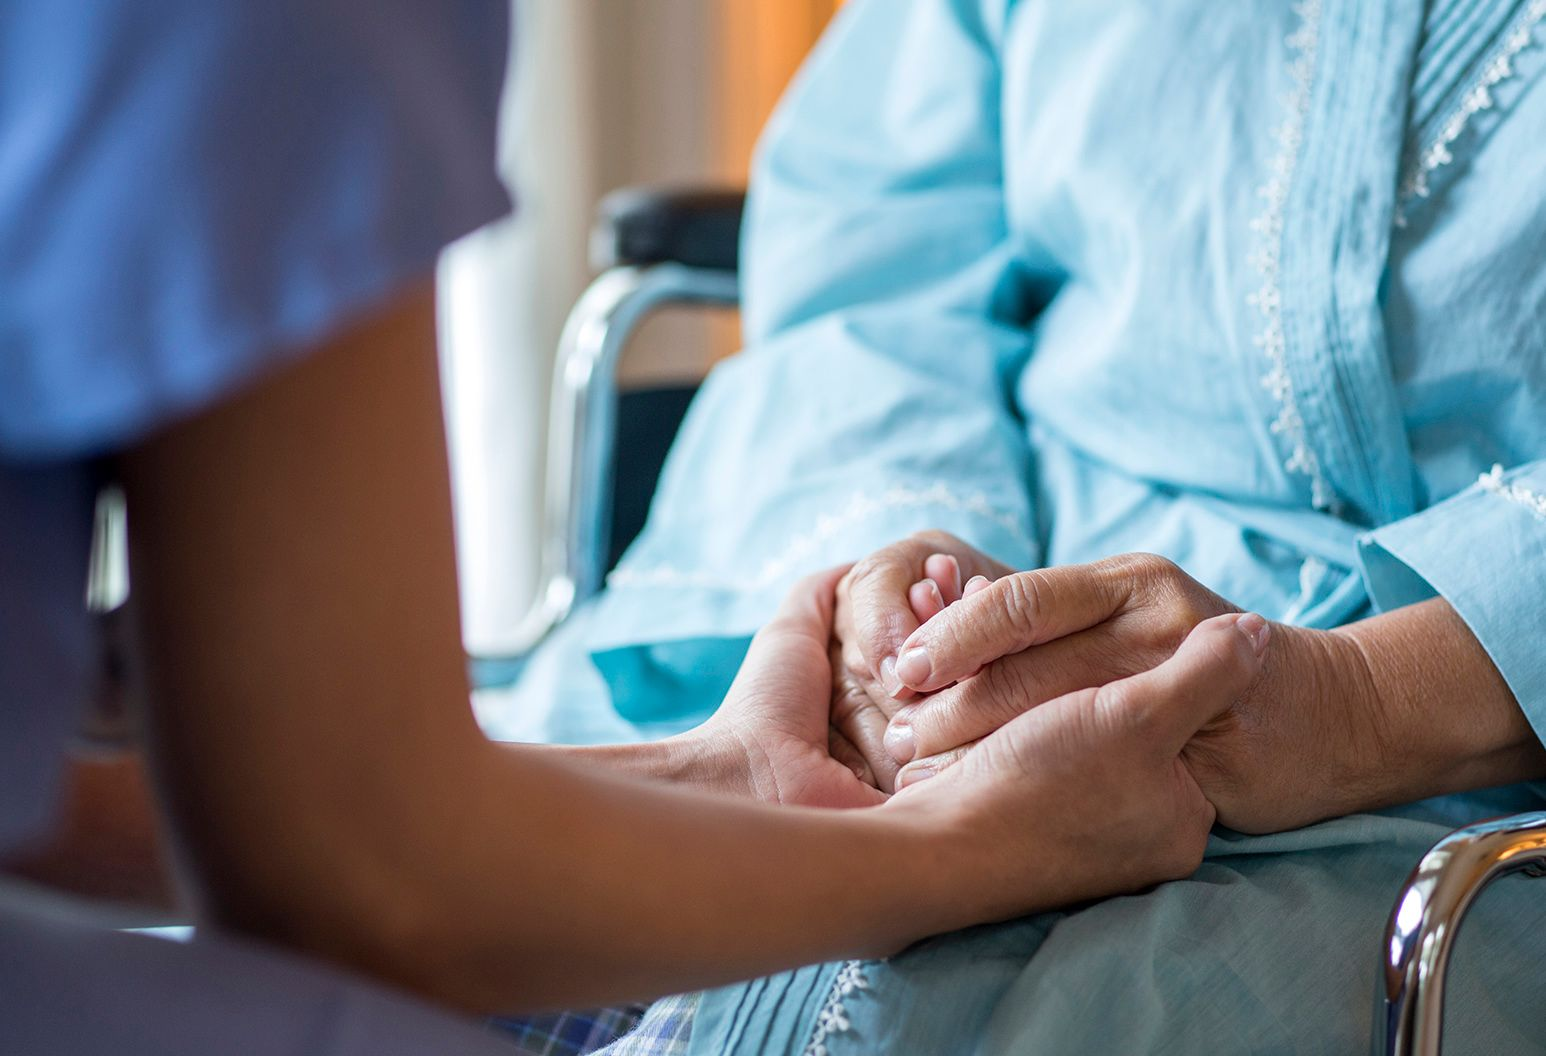 A medical professional's hands are seen up close, as they cradle the hands of an older patient.